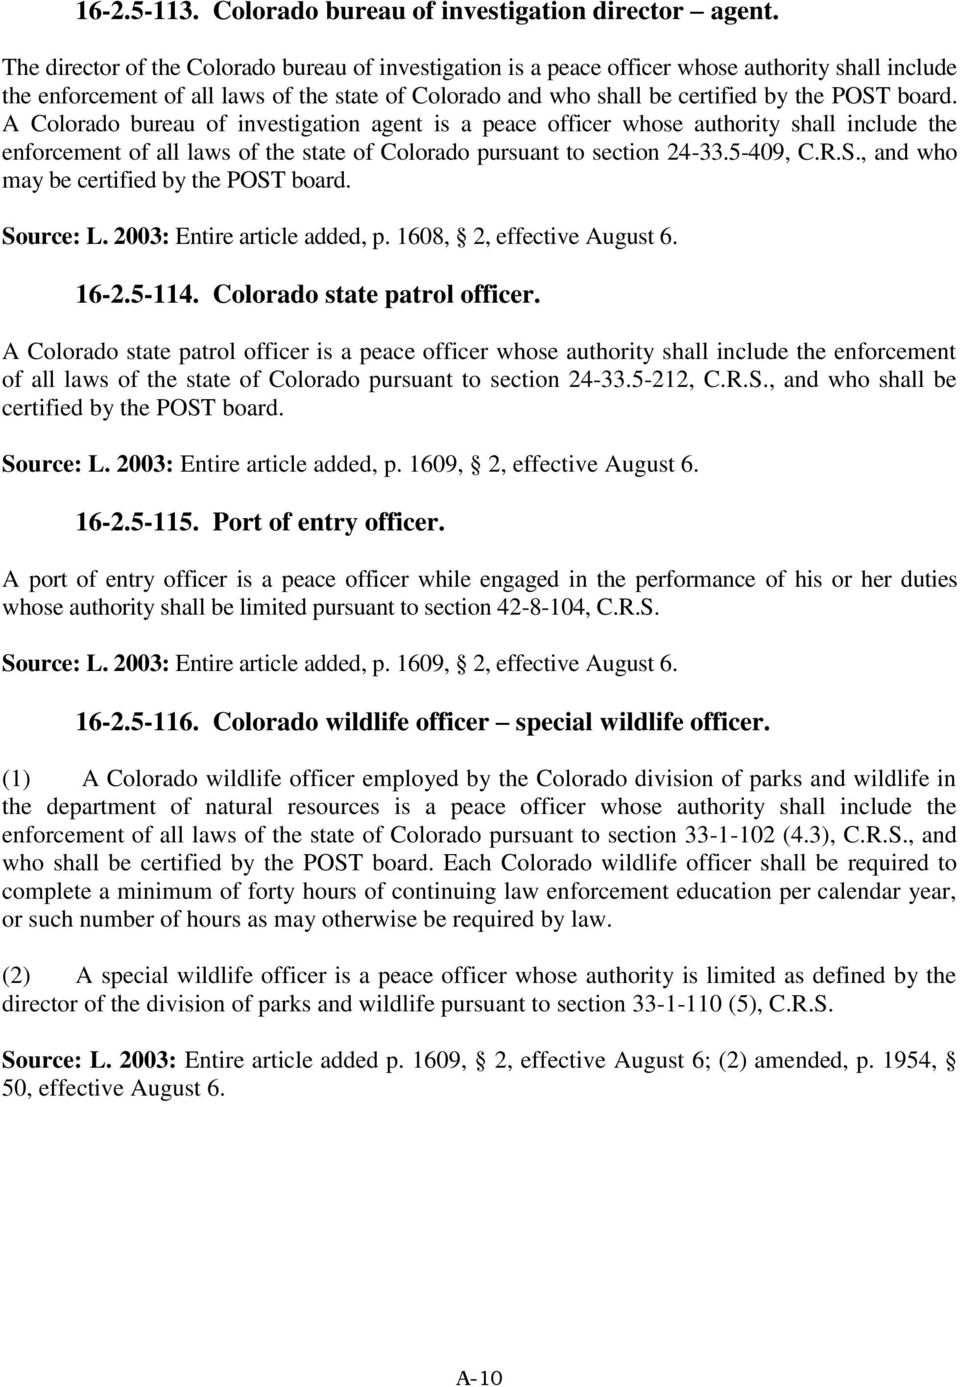 A Colorado bureau of investigation agent is a peace officer whose authority shall include the enforcement of all laws of the state of Colorado pursuant to section 24-33.5-409, C.R.S.